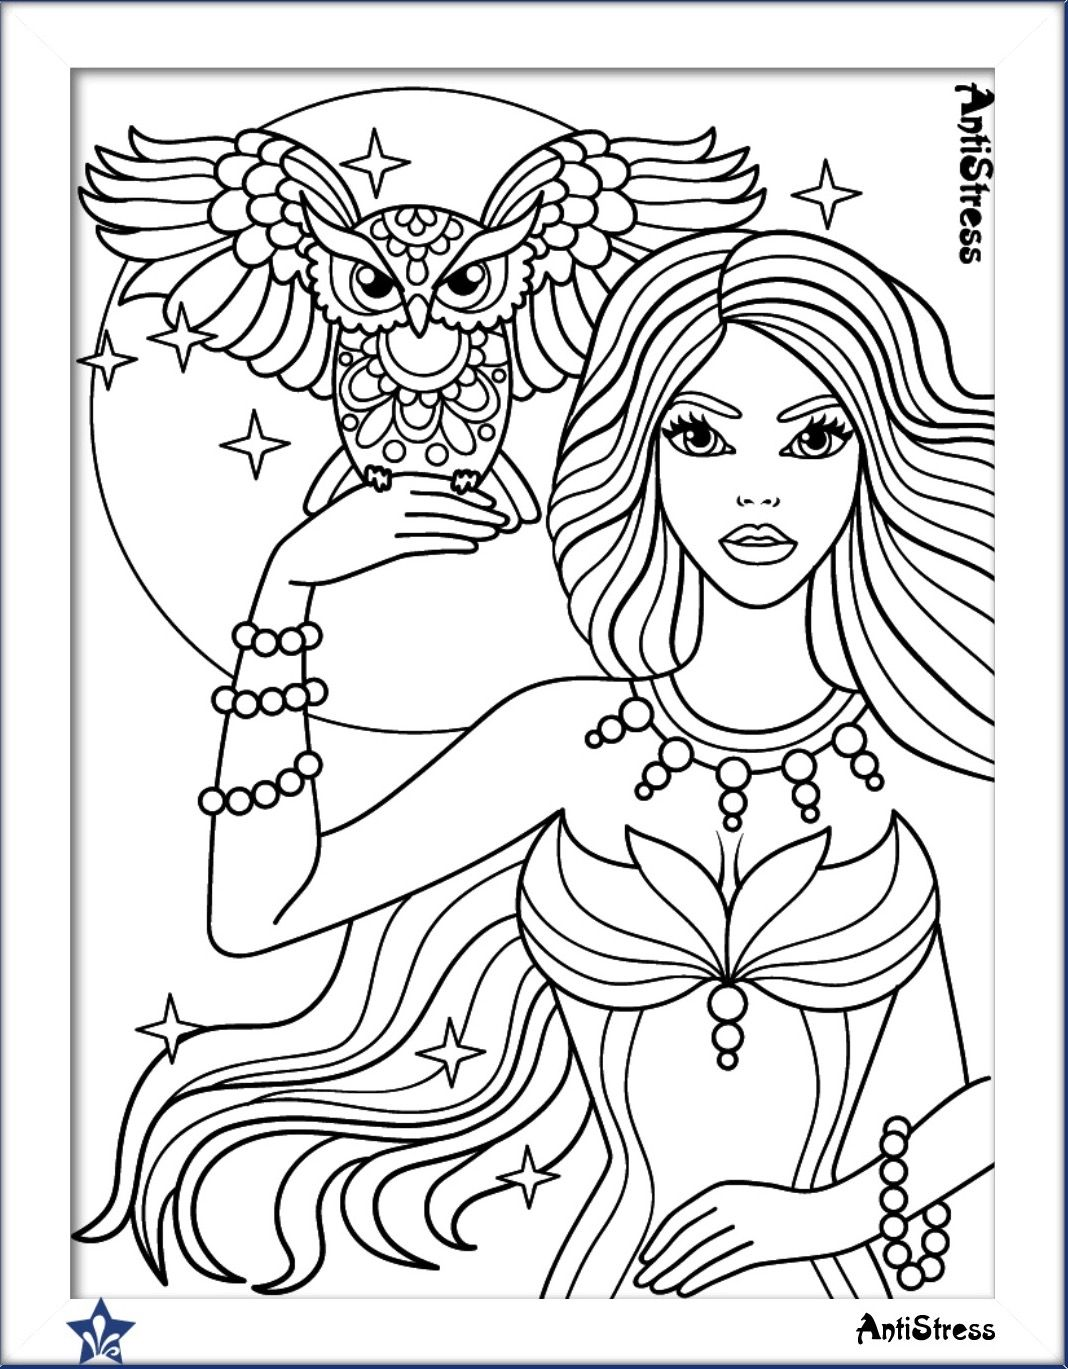 Owl and girl coloring page | Cute coloring pages, Owl coloring ...